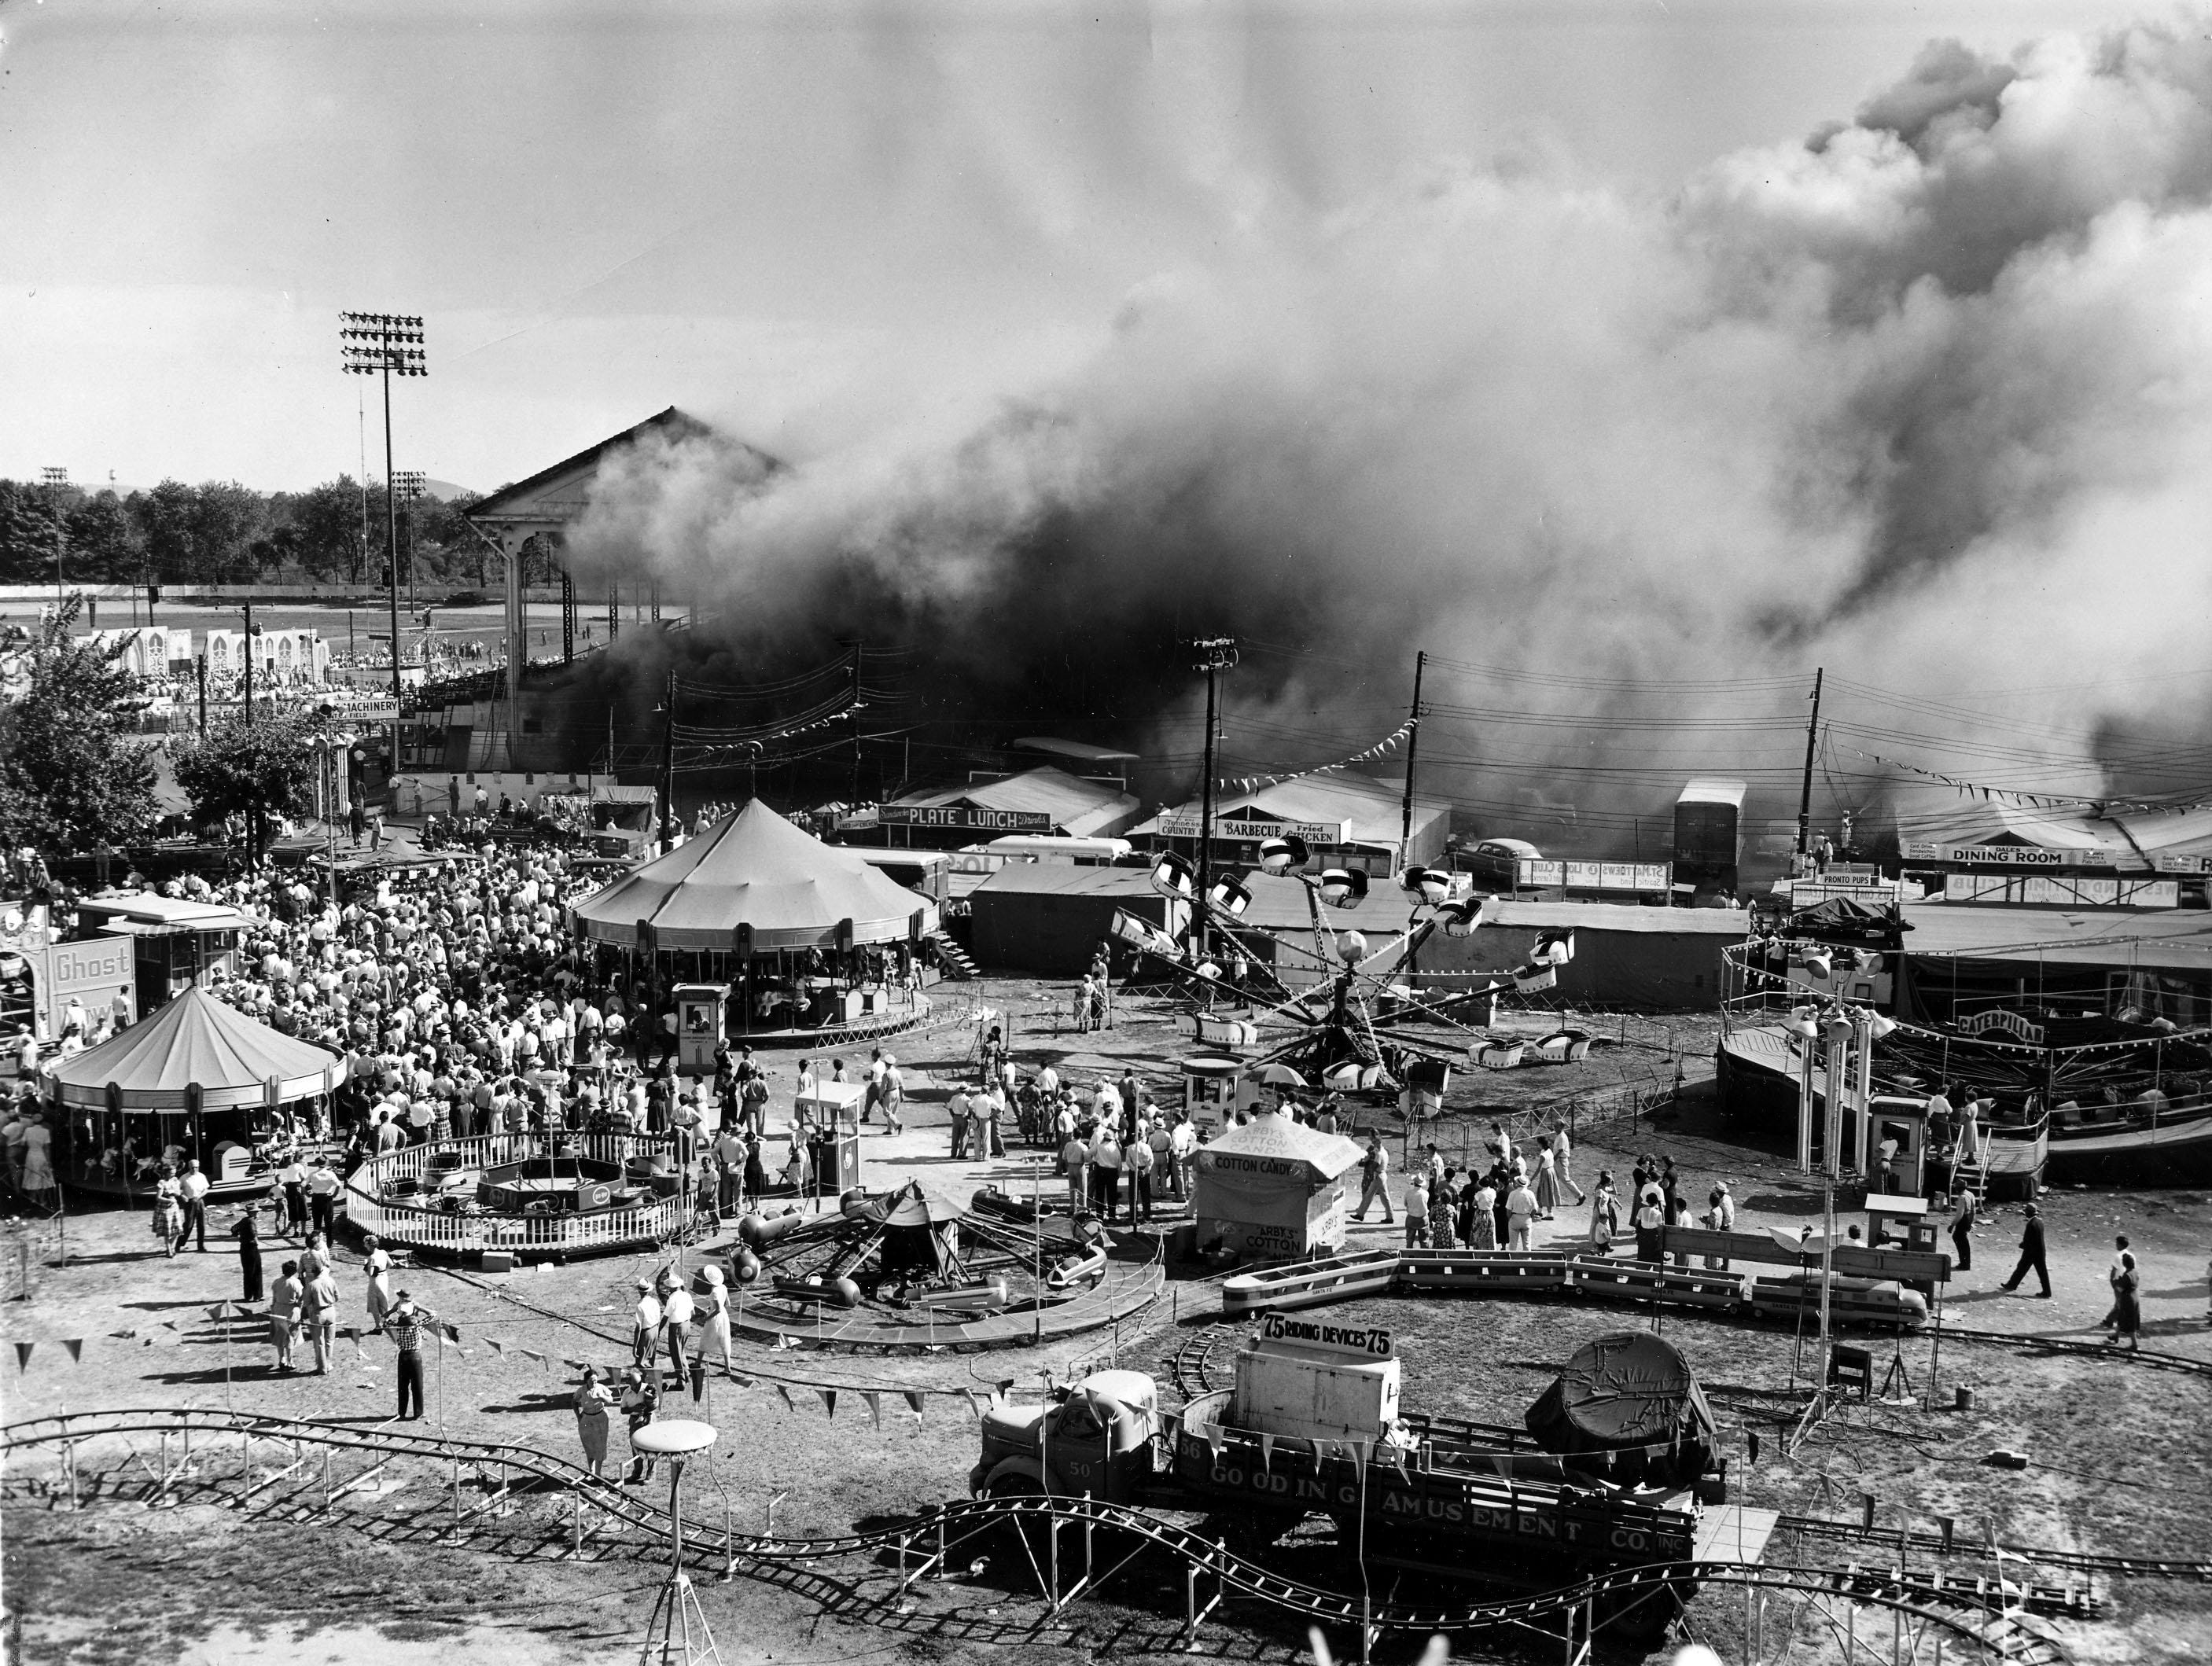 Smoke pours from the grandstand but the midway rides and the water carnival, far left in front of grandstand, are in bright sunshine. The rides stand idle because of the greater attraction of the fire. The State Fair Board was meeting in its office building at the Fairgrounds when the fire broke out.